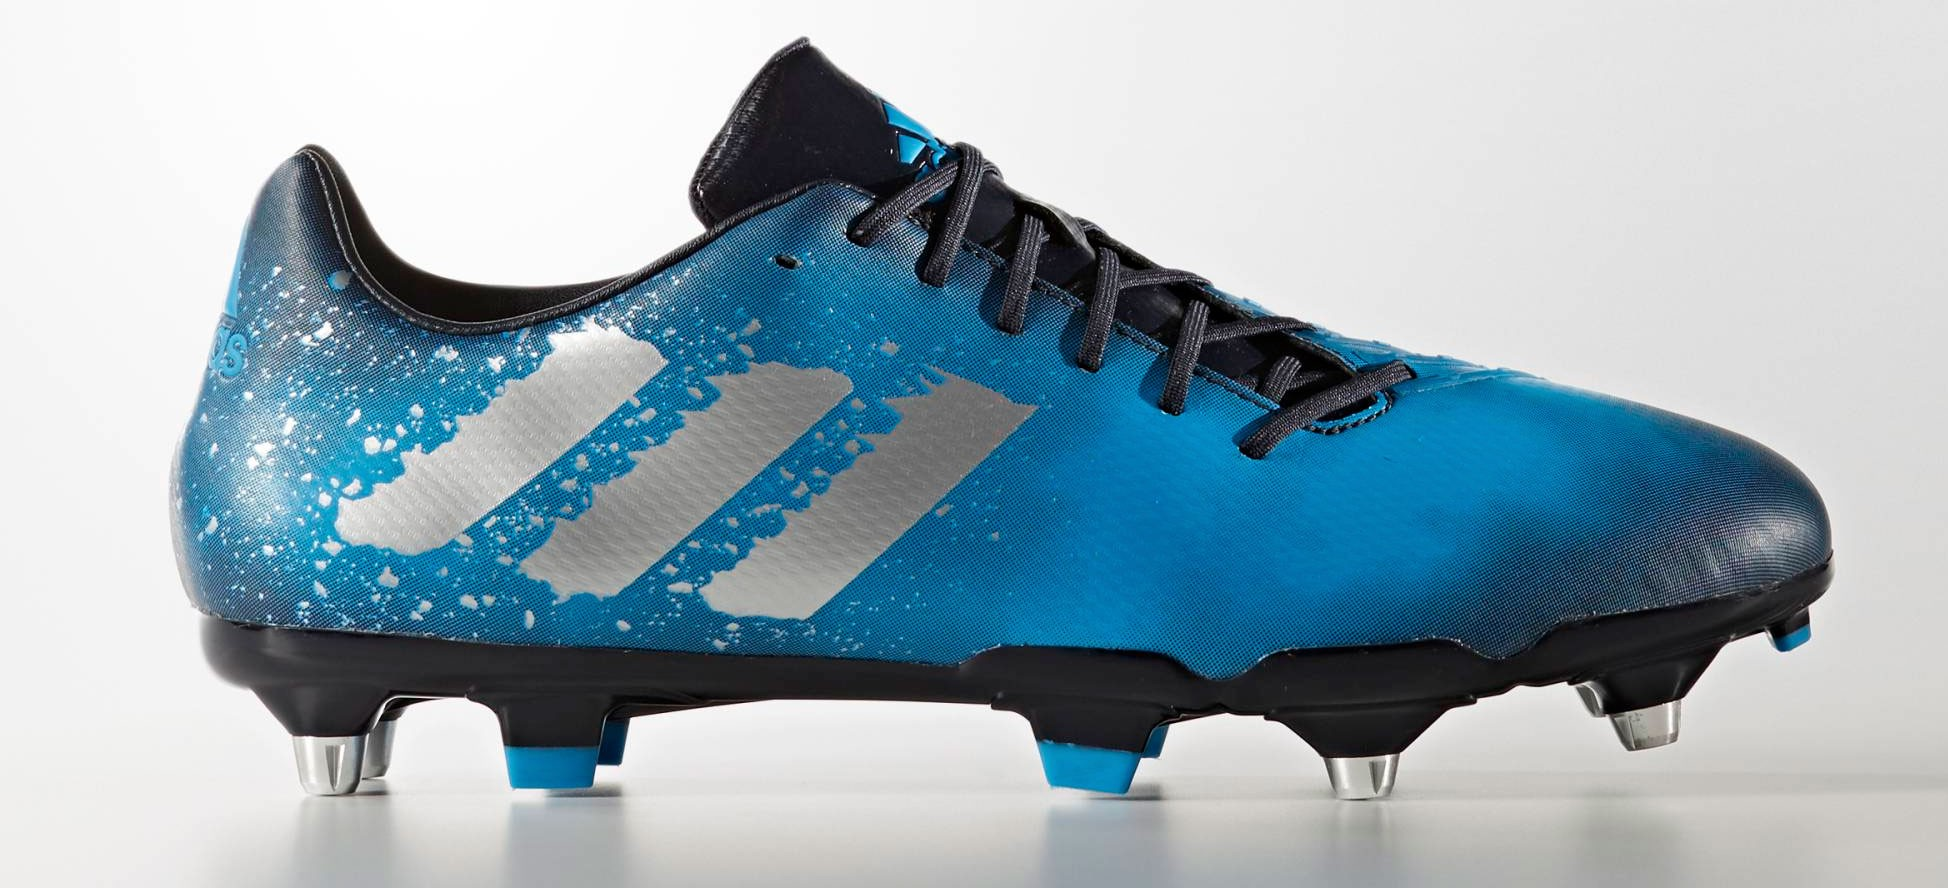 Bleu Noir Sg Rugby Adidas Chaussures Malice Lk1jtc3uf5 DHeWIY2E9